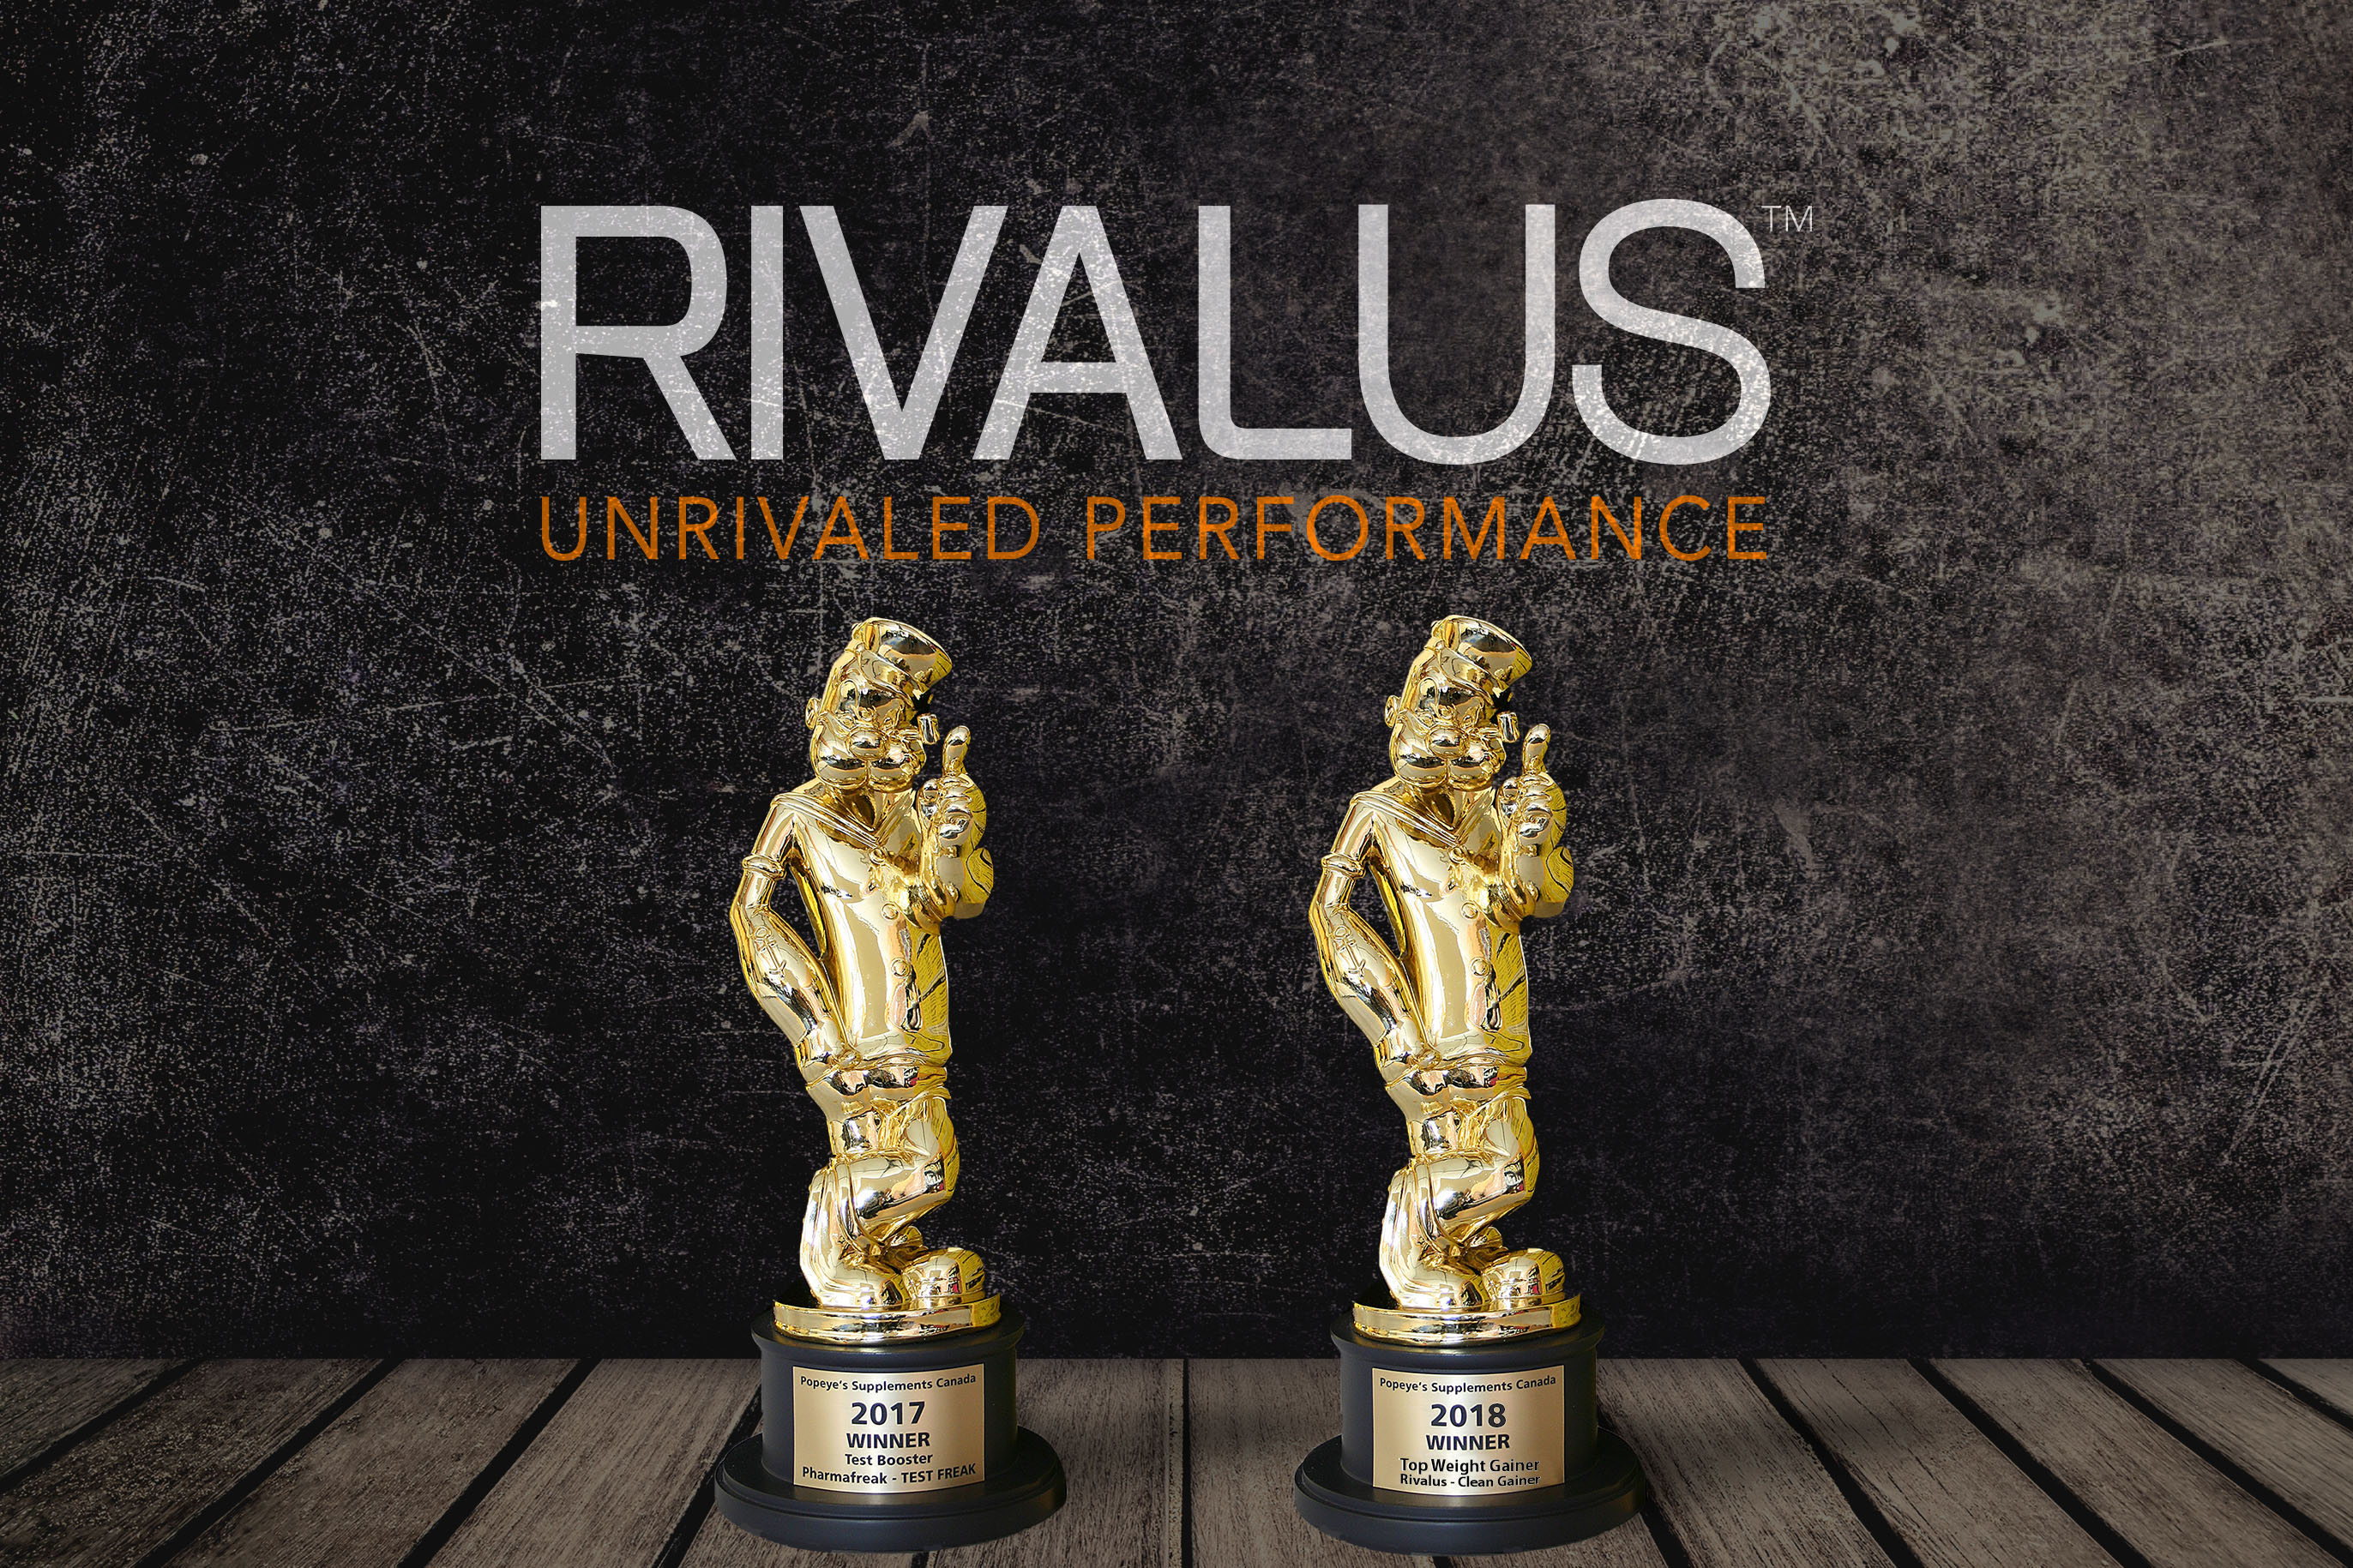 Rivalus Wins, Two Years in a Row!